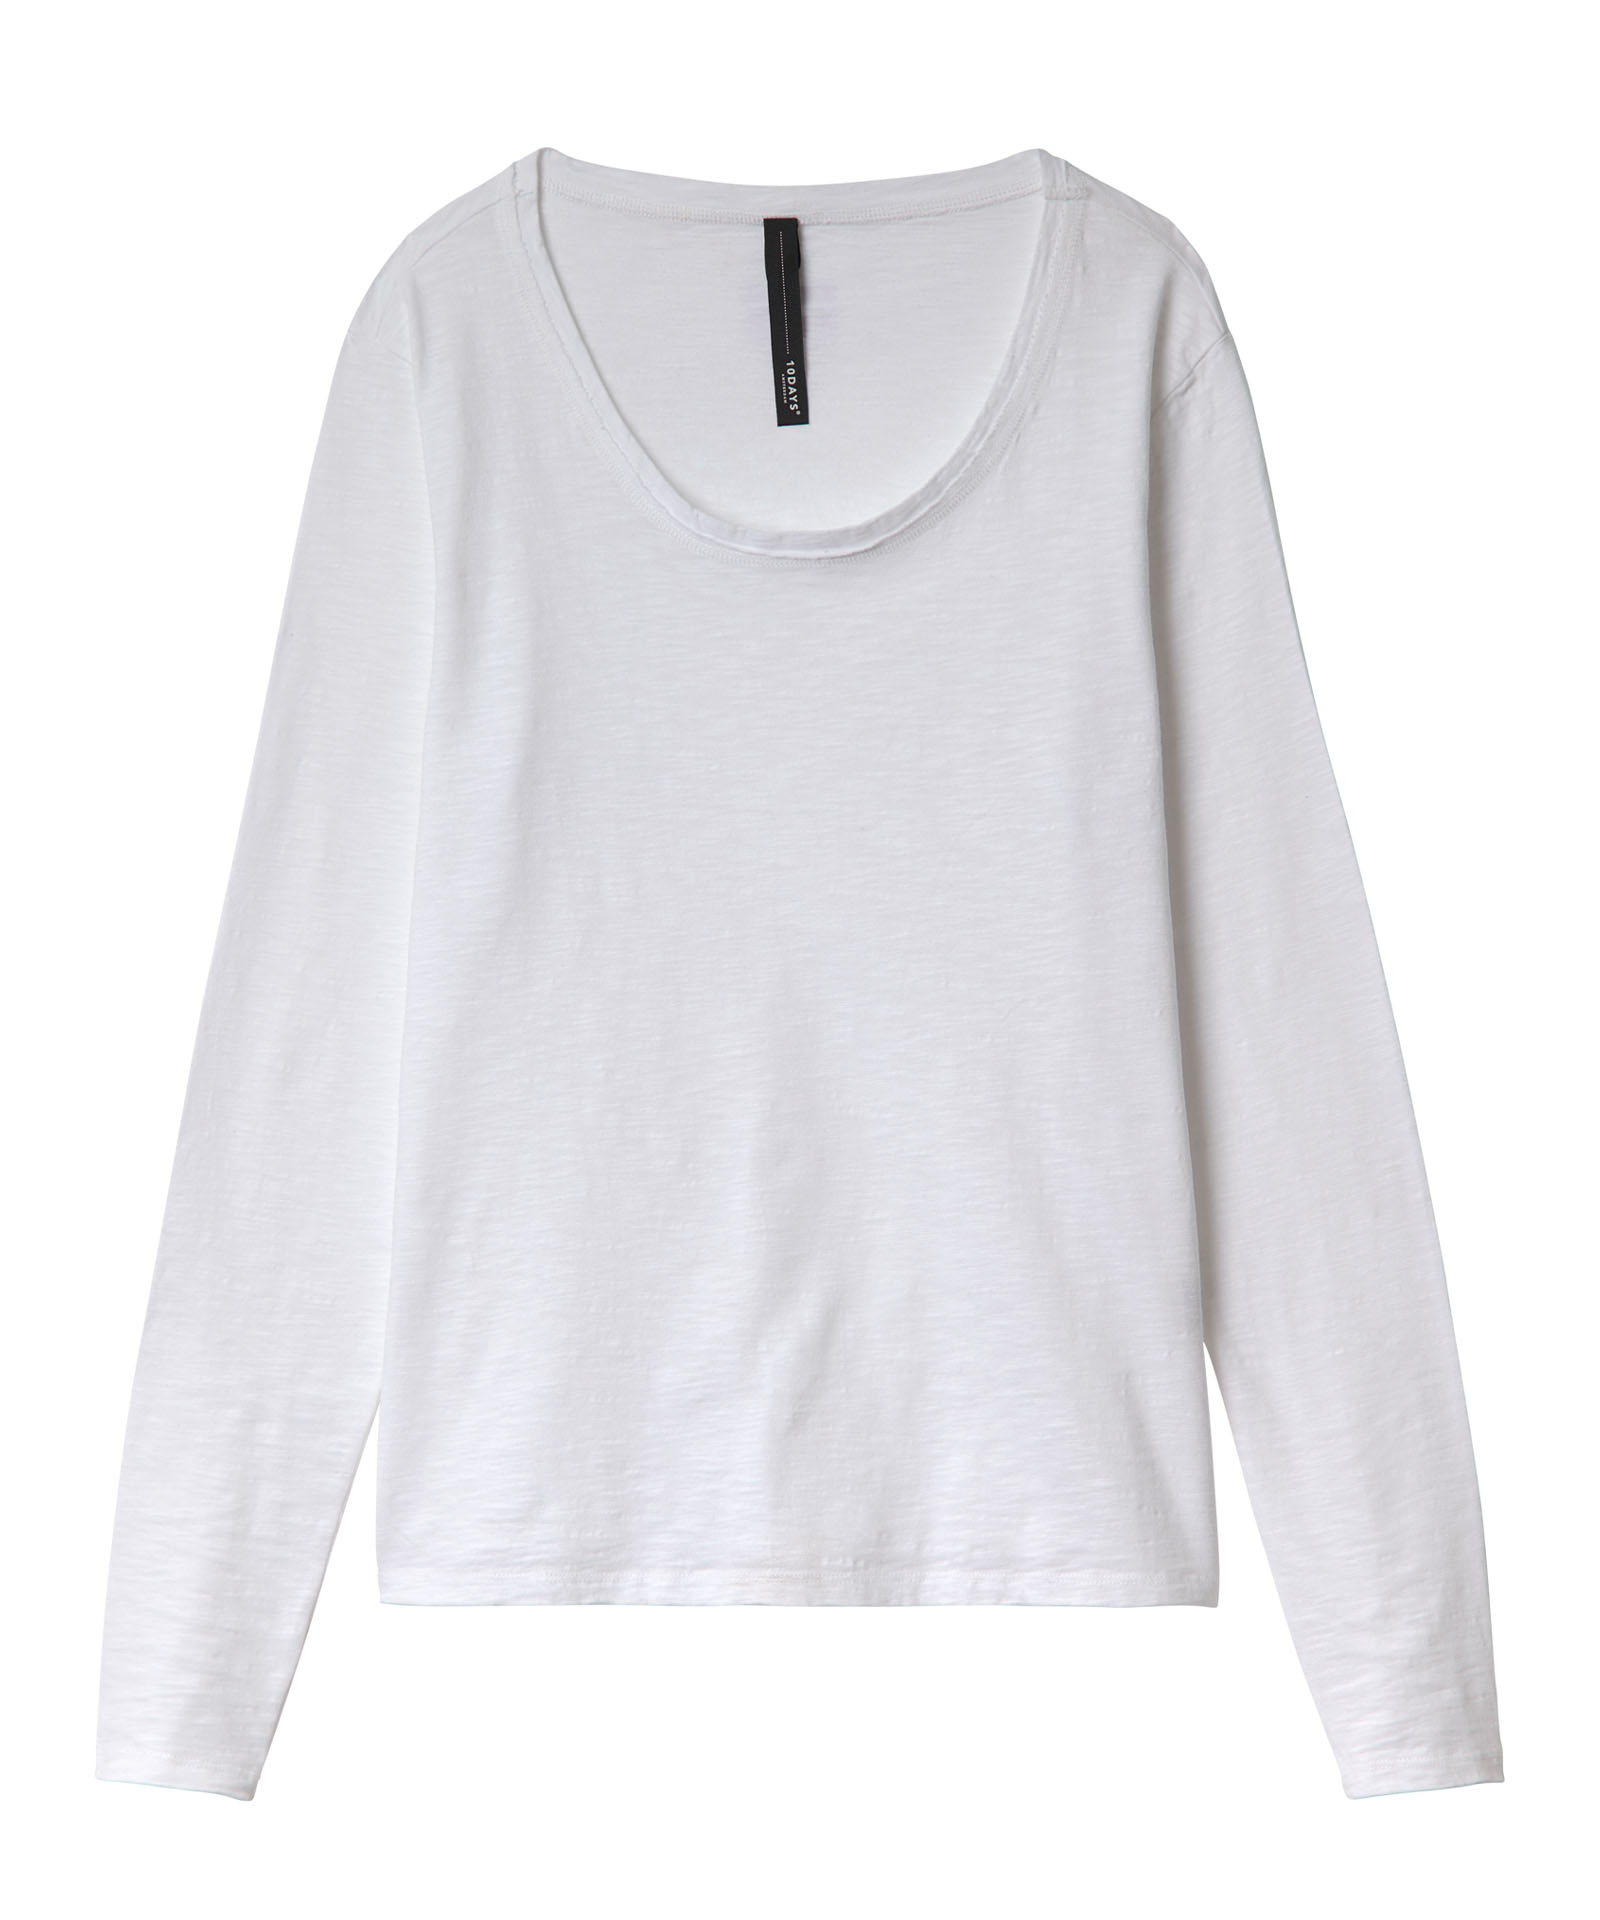 10Days witte longsleeve slub top